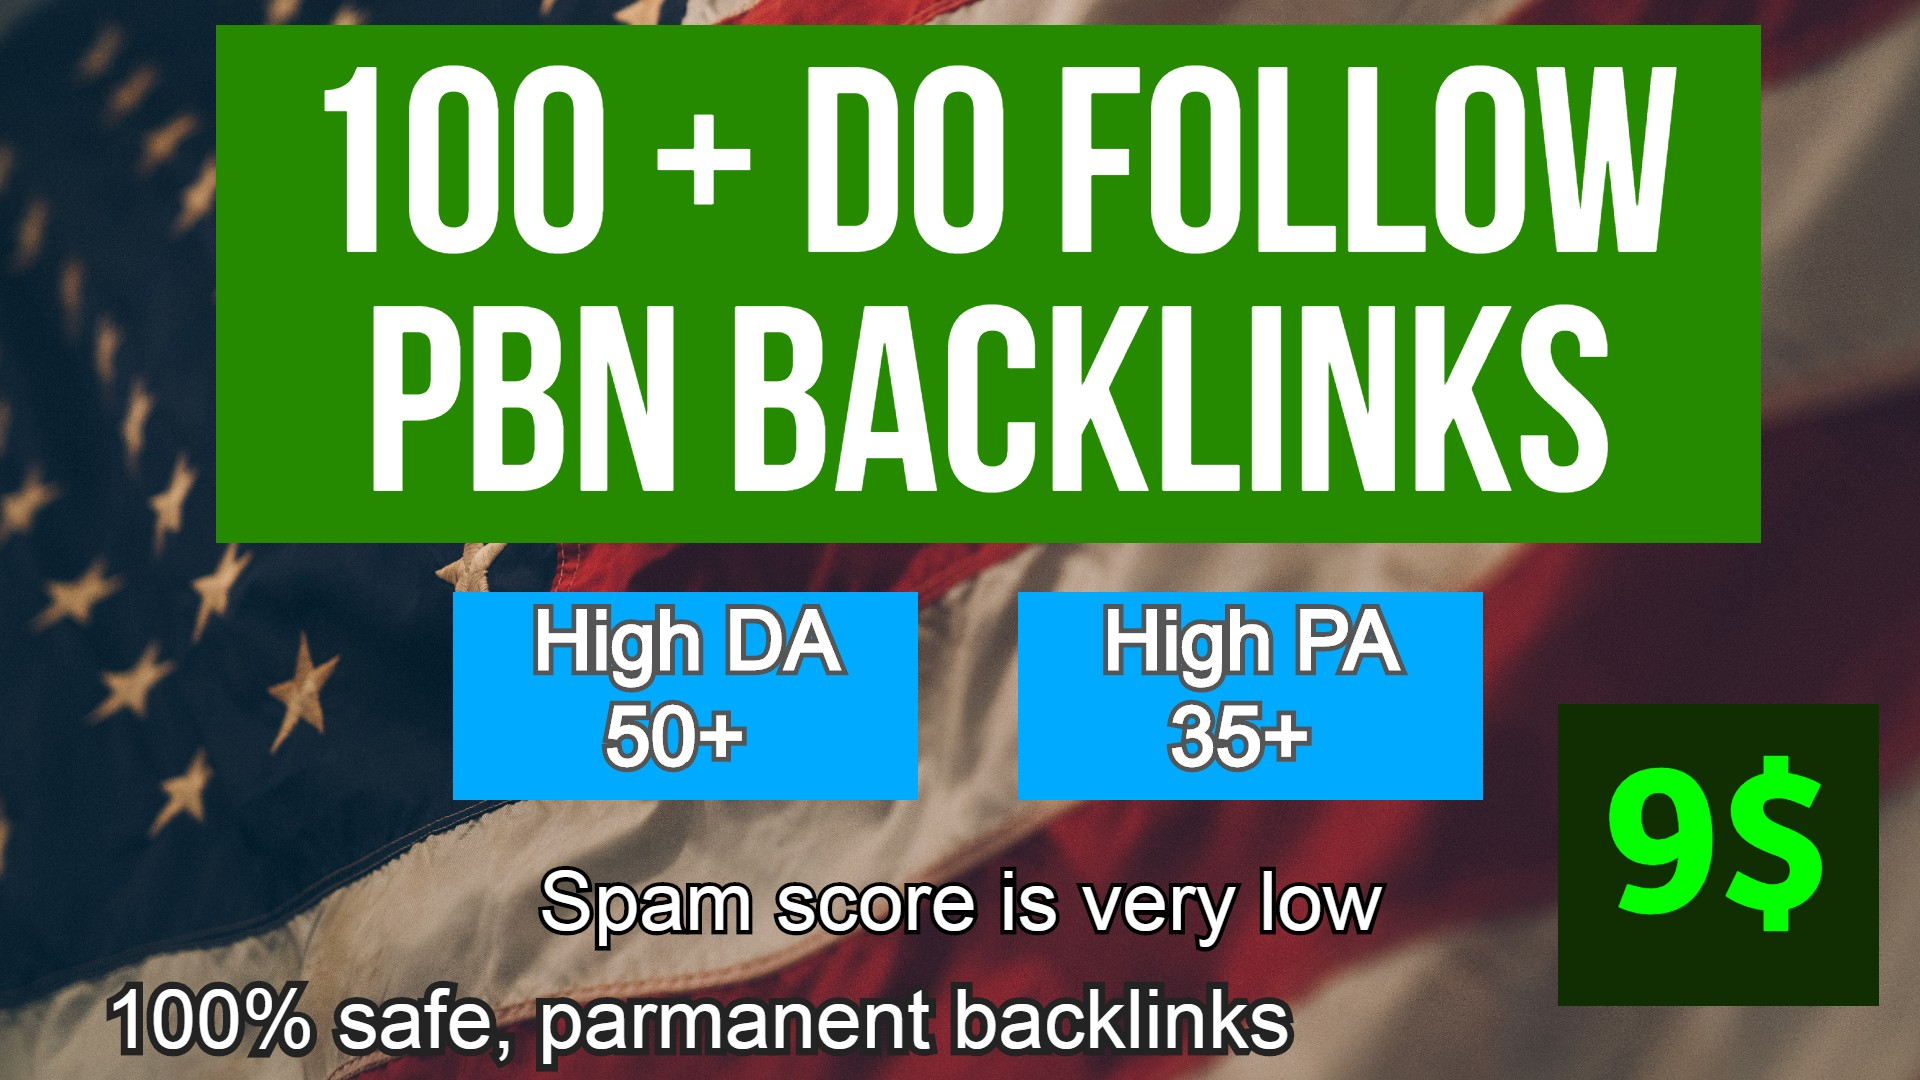 Powerful 100+ Backlink with 50+ DA 35+ PA High Quality unique website link. GET IT NOW